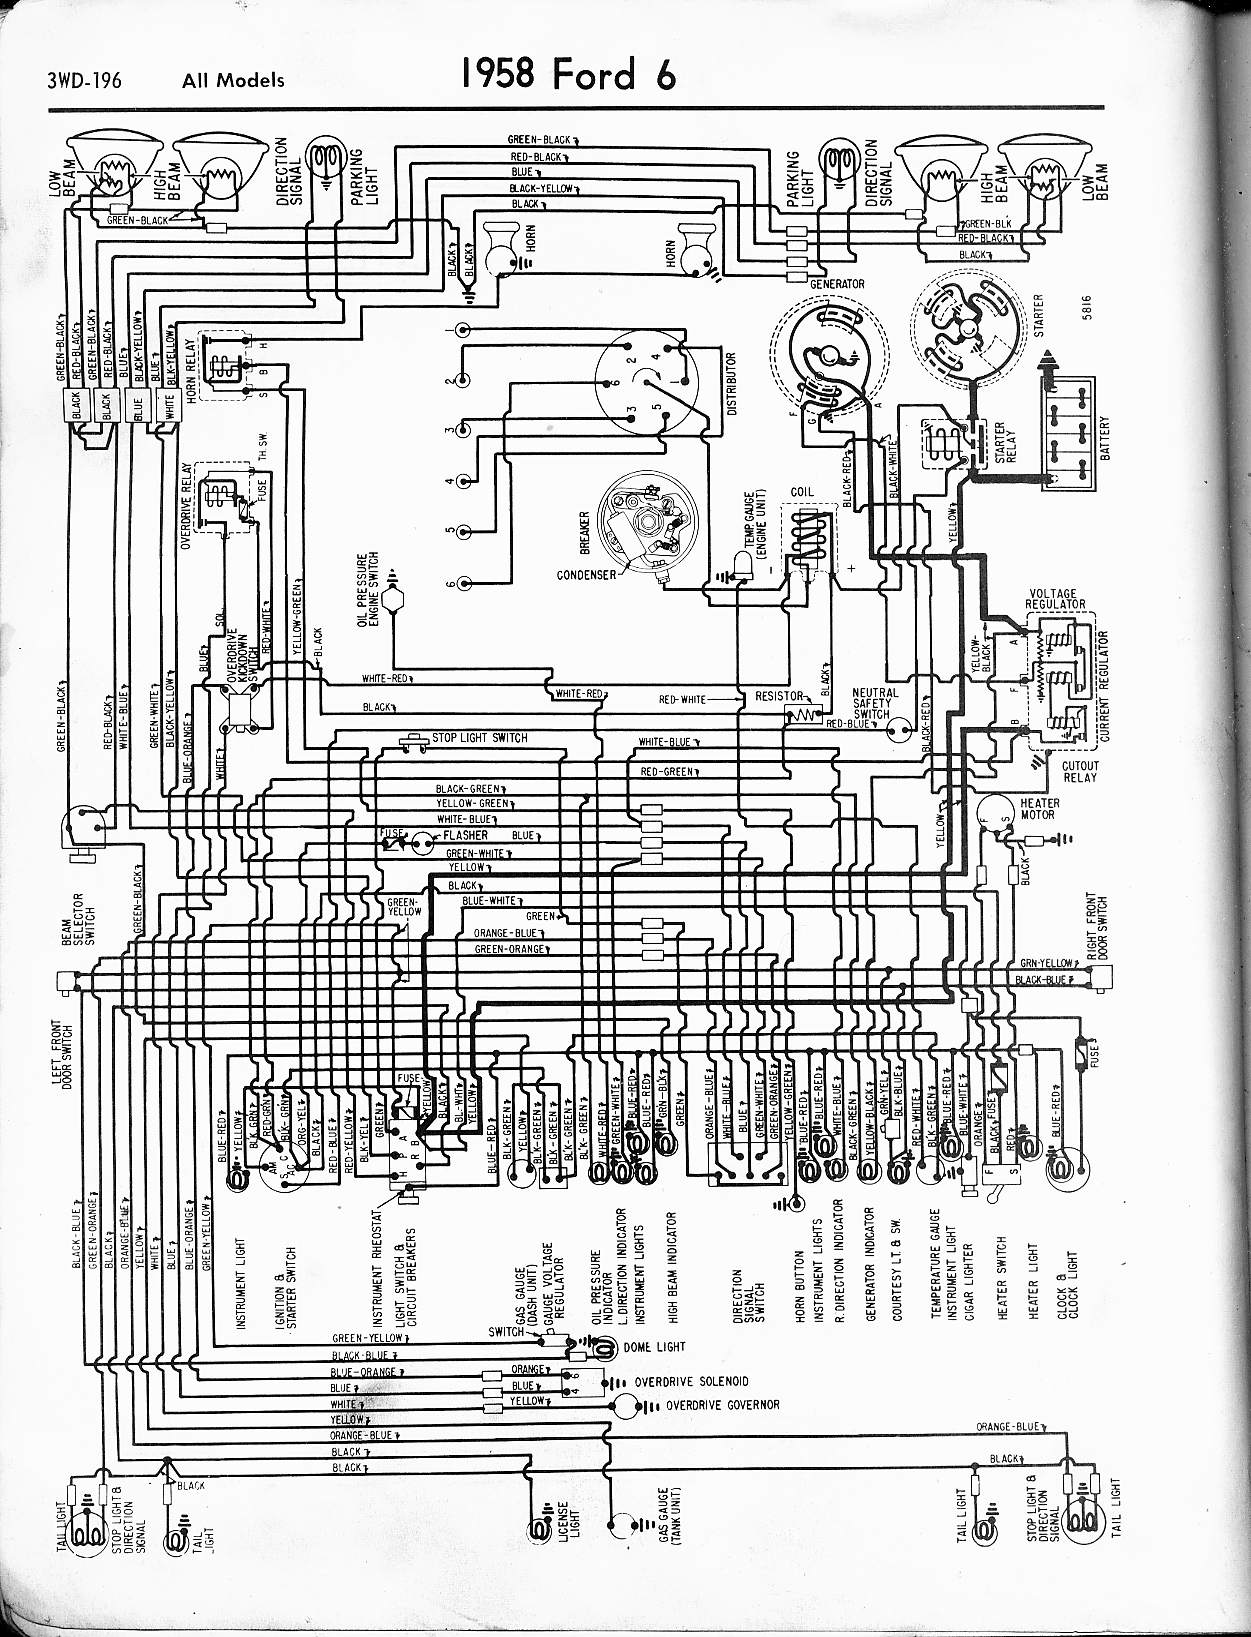 1969 f100 wiring harness detailed schematics diagram rh lelandlutheran com  1977 F100 1979 ford f100 wiring